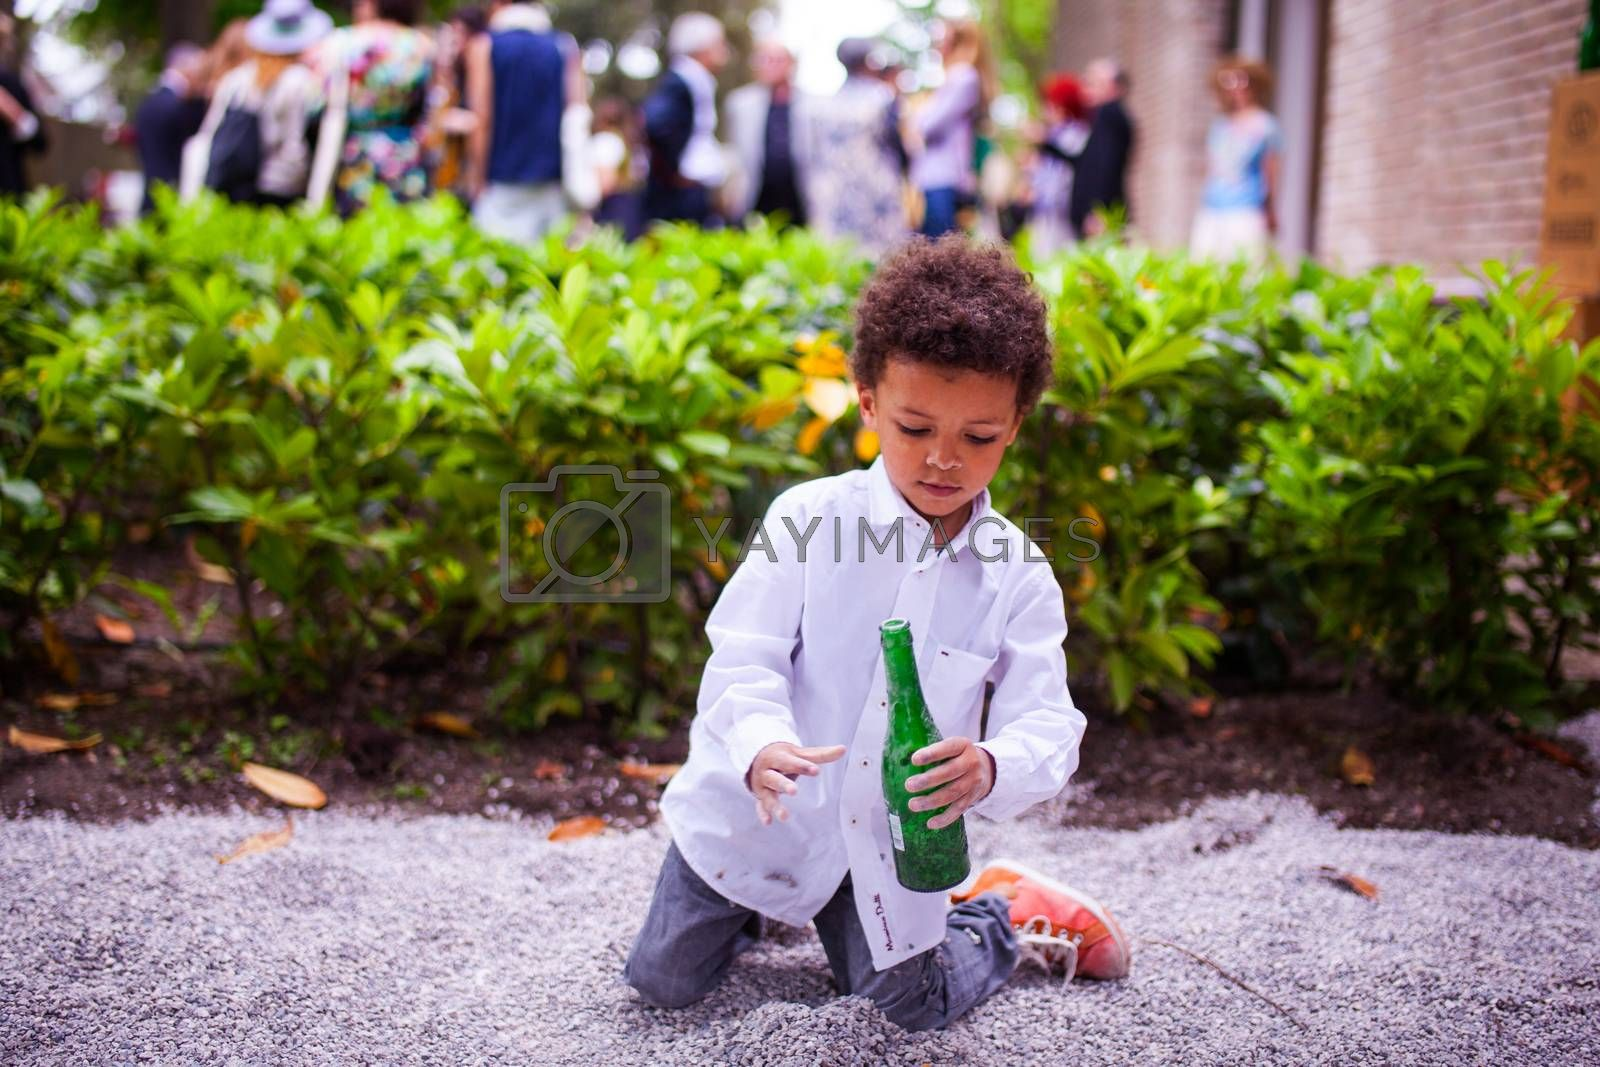 VENICE, ITALY - MAY 06: Child in the street playing with beer bottles on May 06, 2015